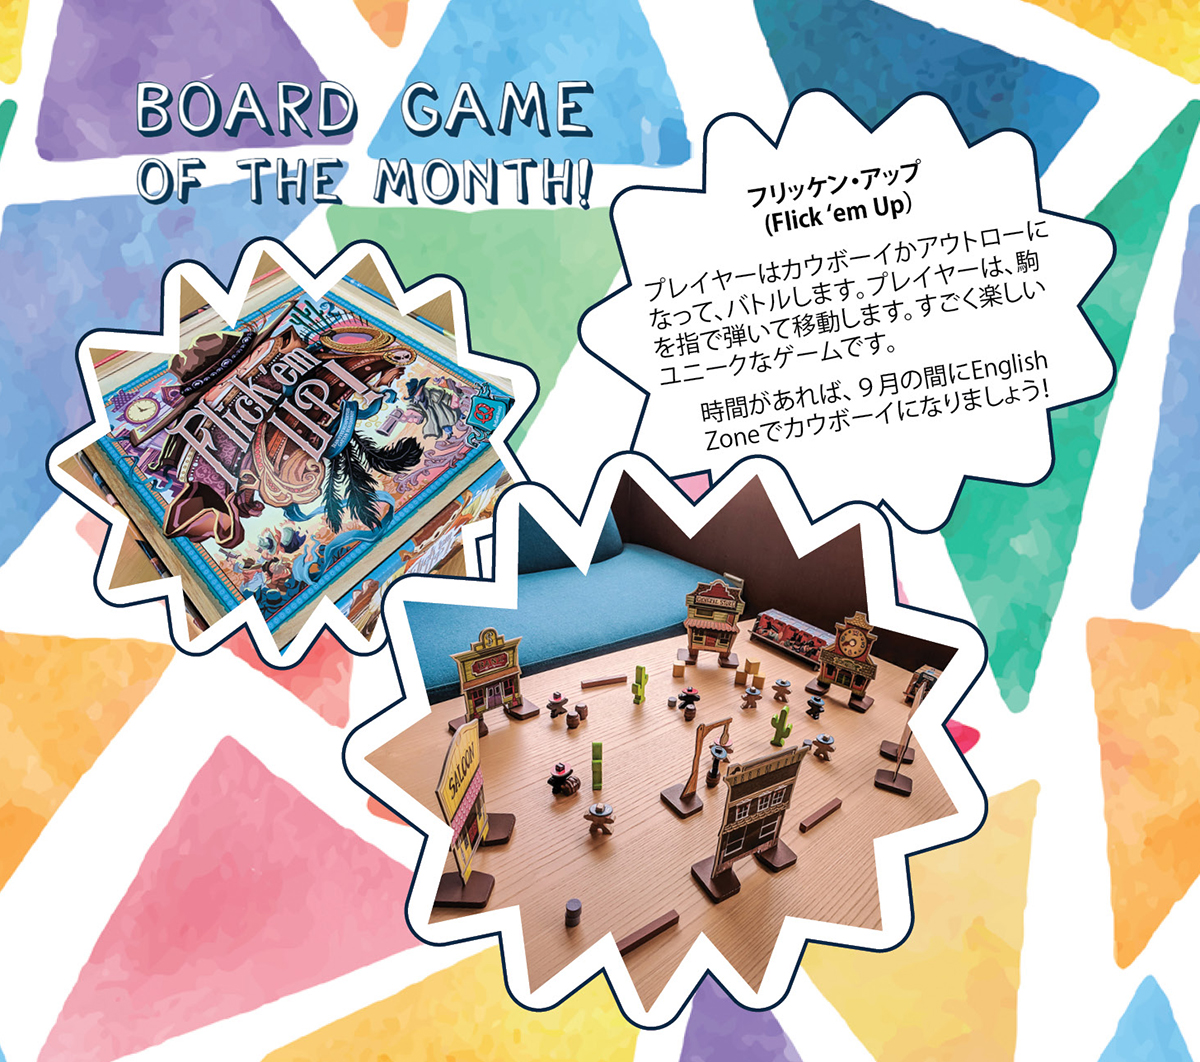 Board%20game%20of%20the%20month%20for%20blog.jpg